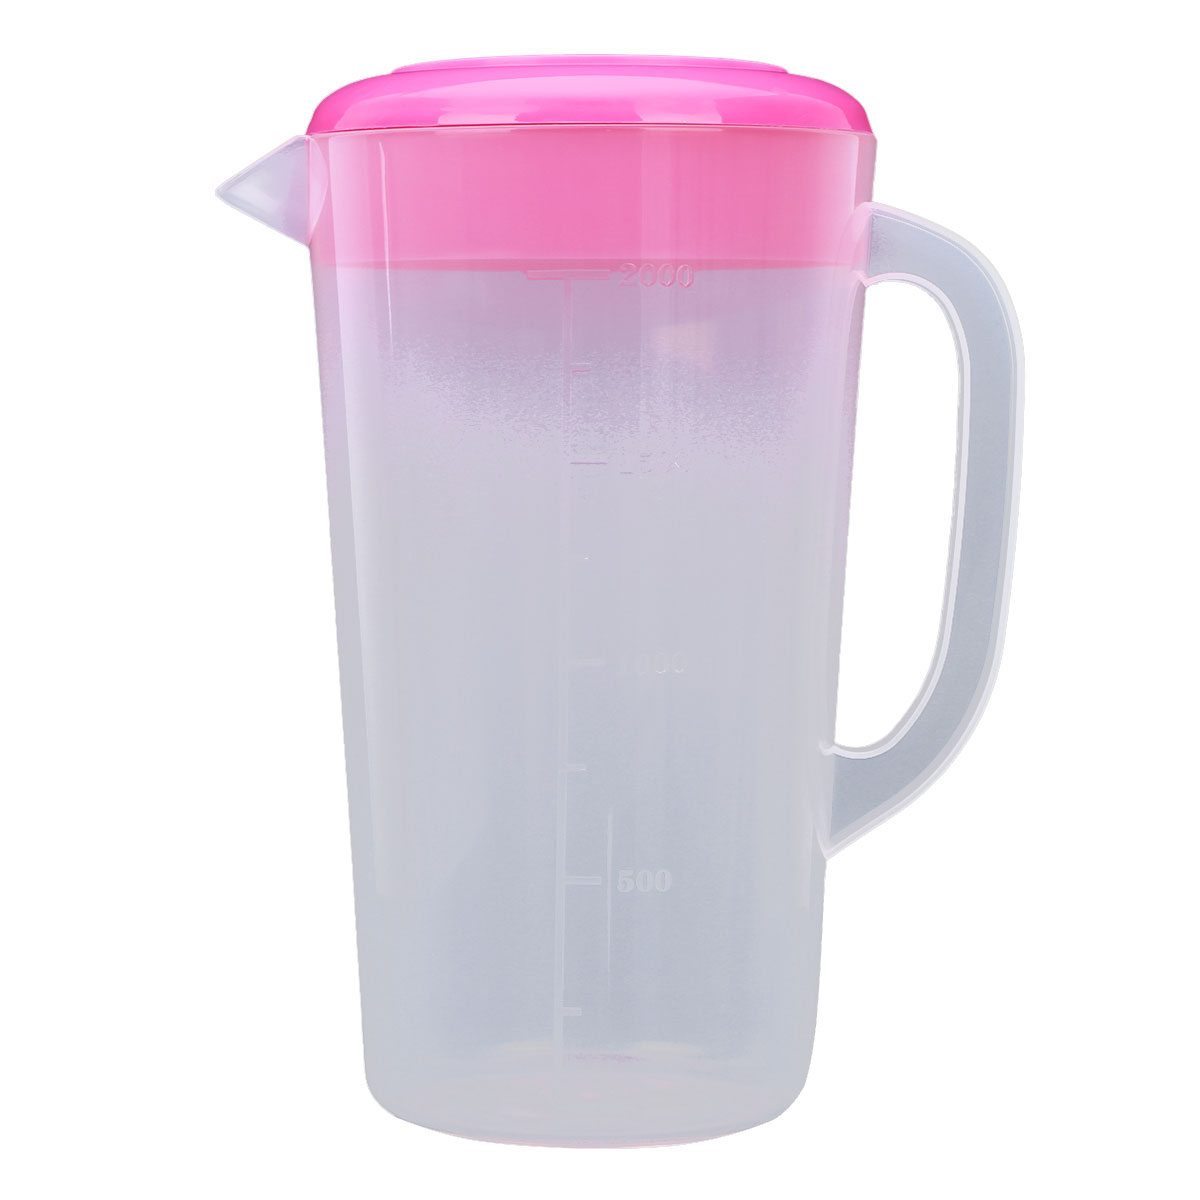 Large Capacity Food Grade Plastic Measuring Water Pitcher Jug Kitchen Pitcher Water Filters with Lids for Ice Tea Juice Beer